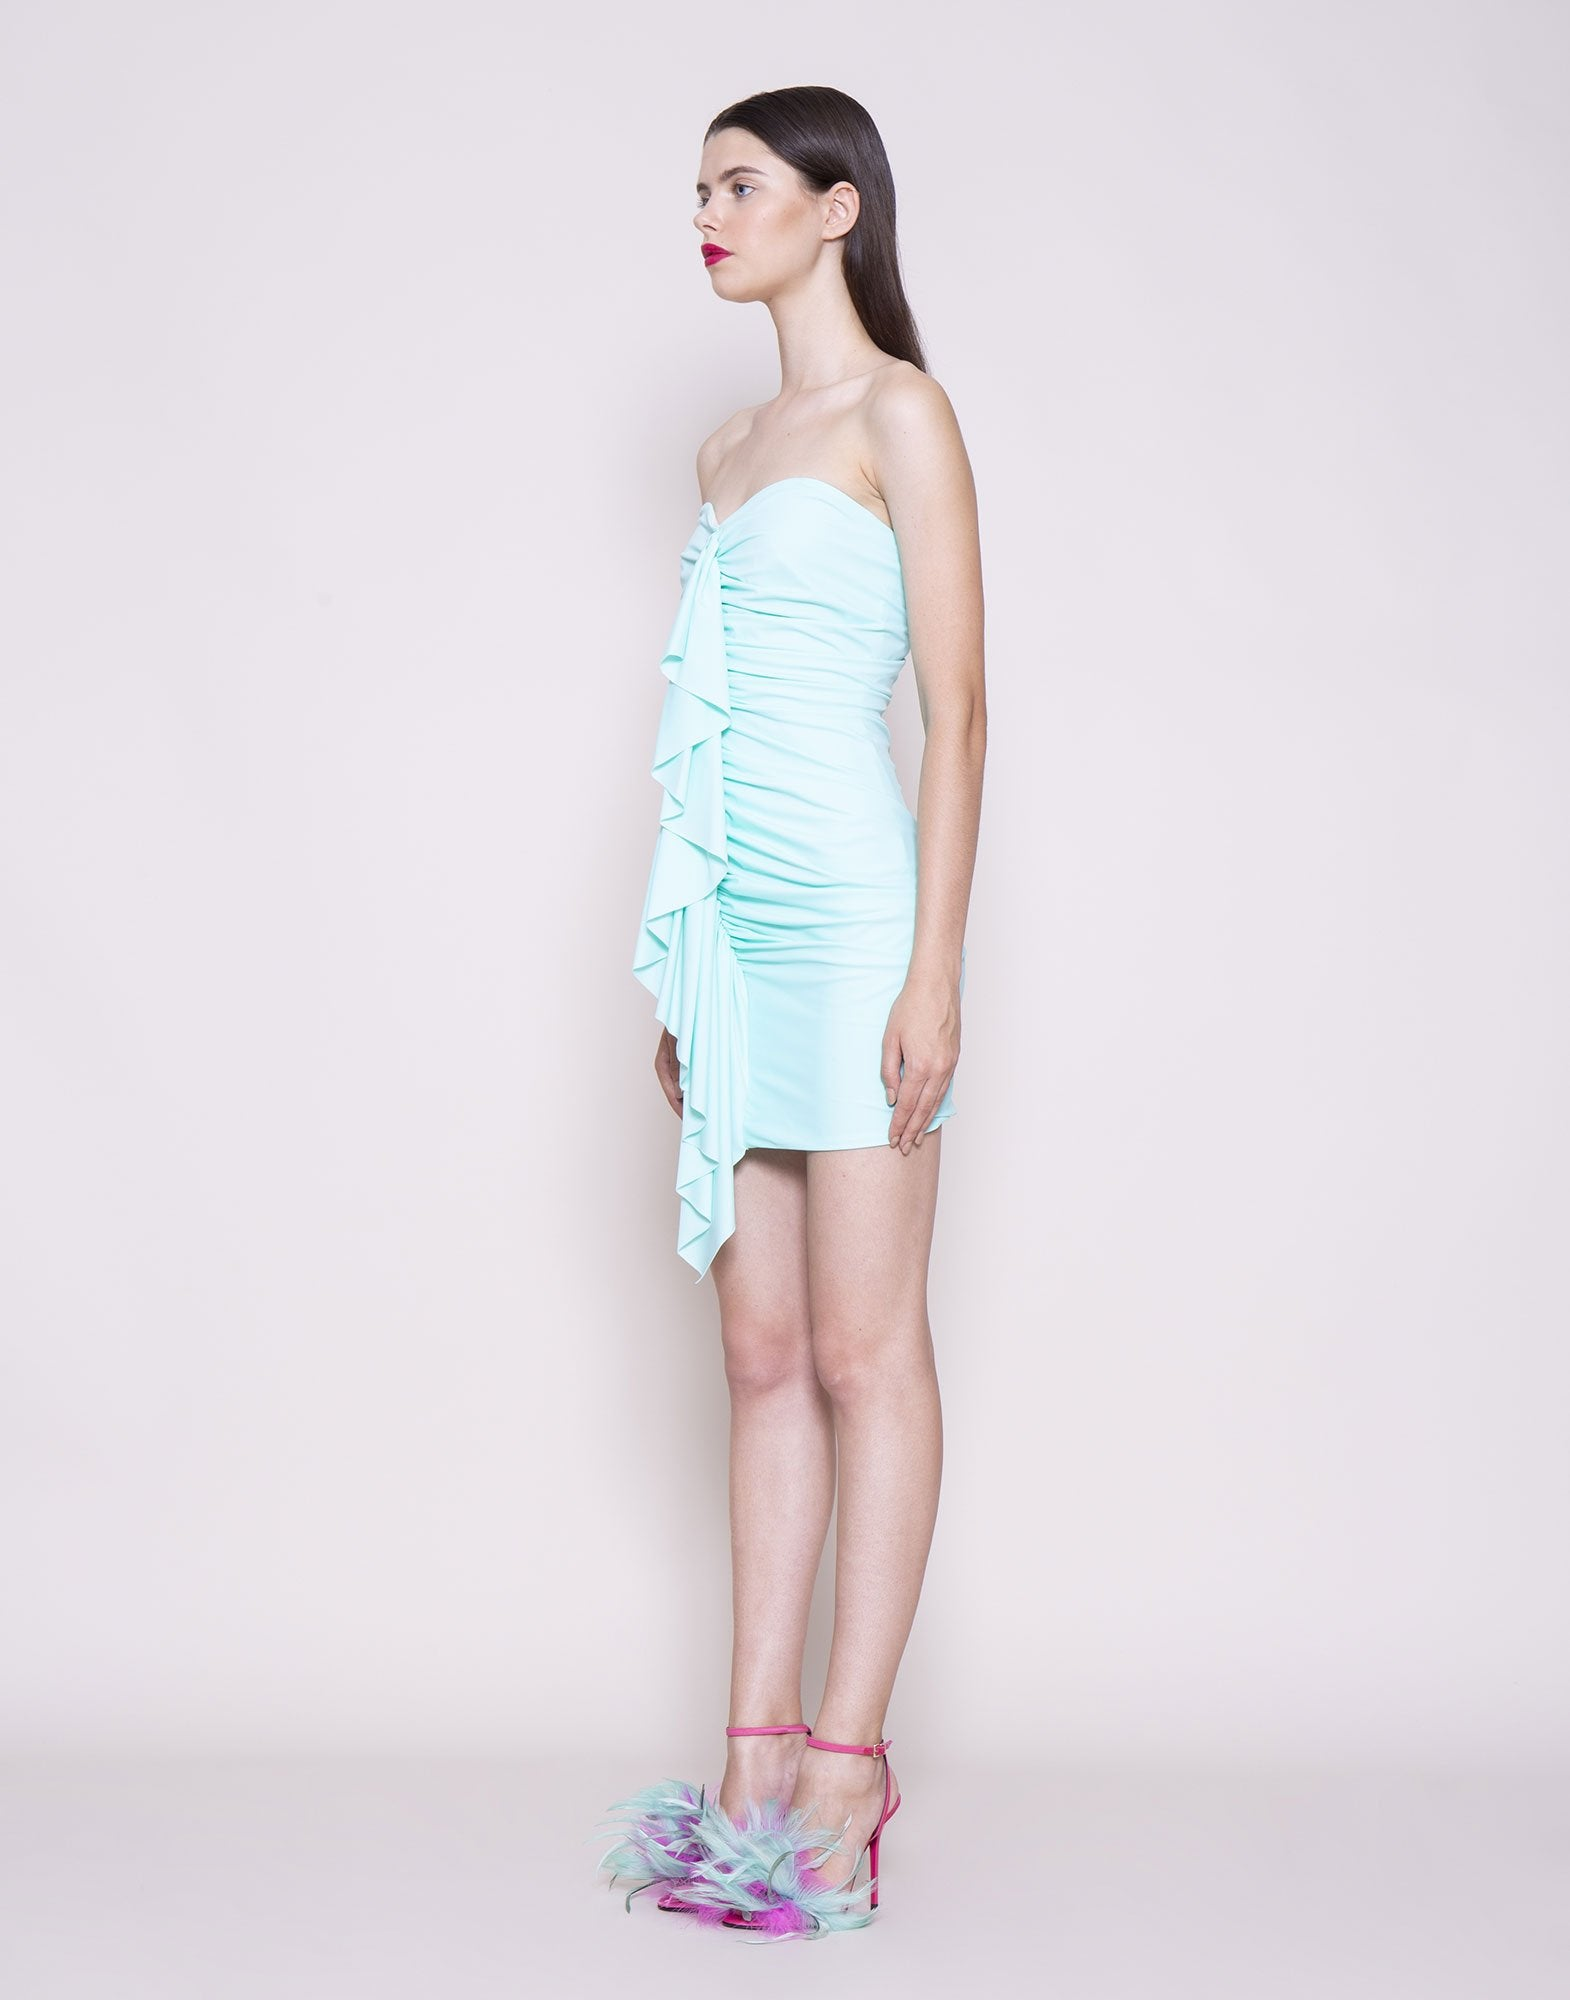 Sky blue ruffled mini dress | NEW ARRIVALS